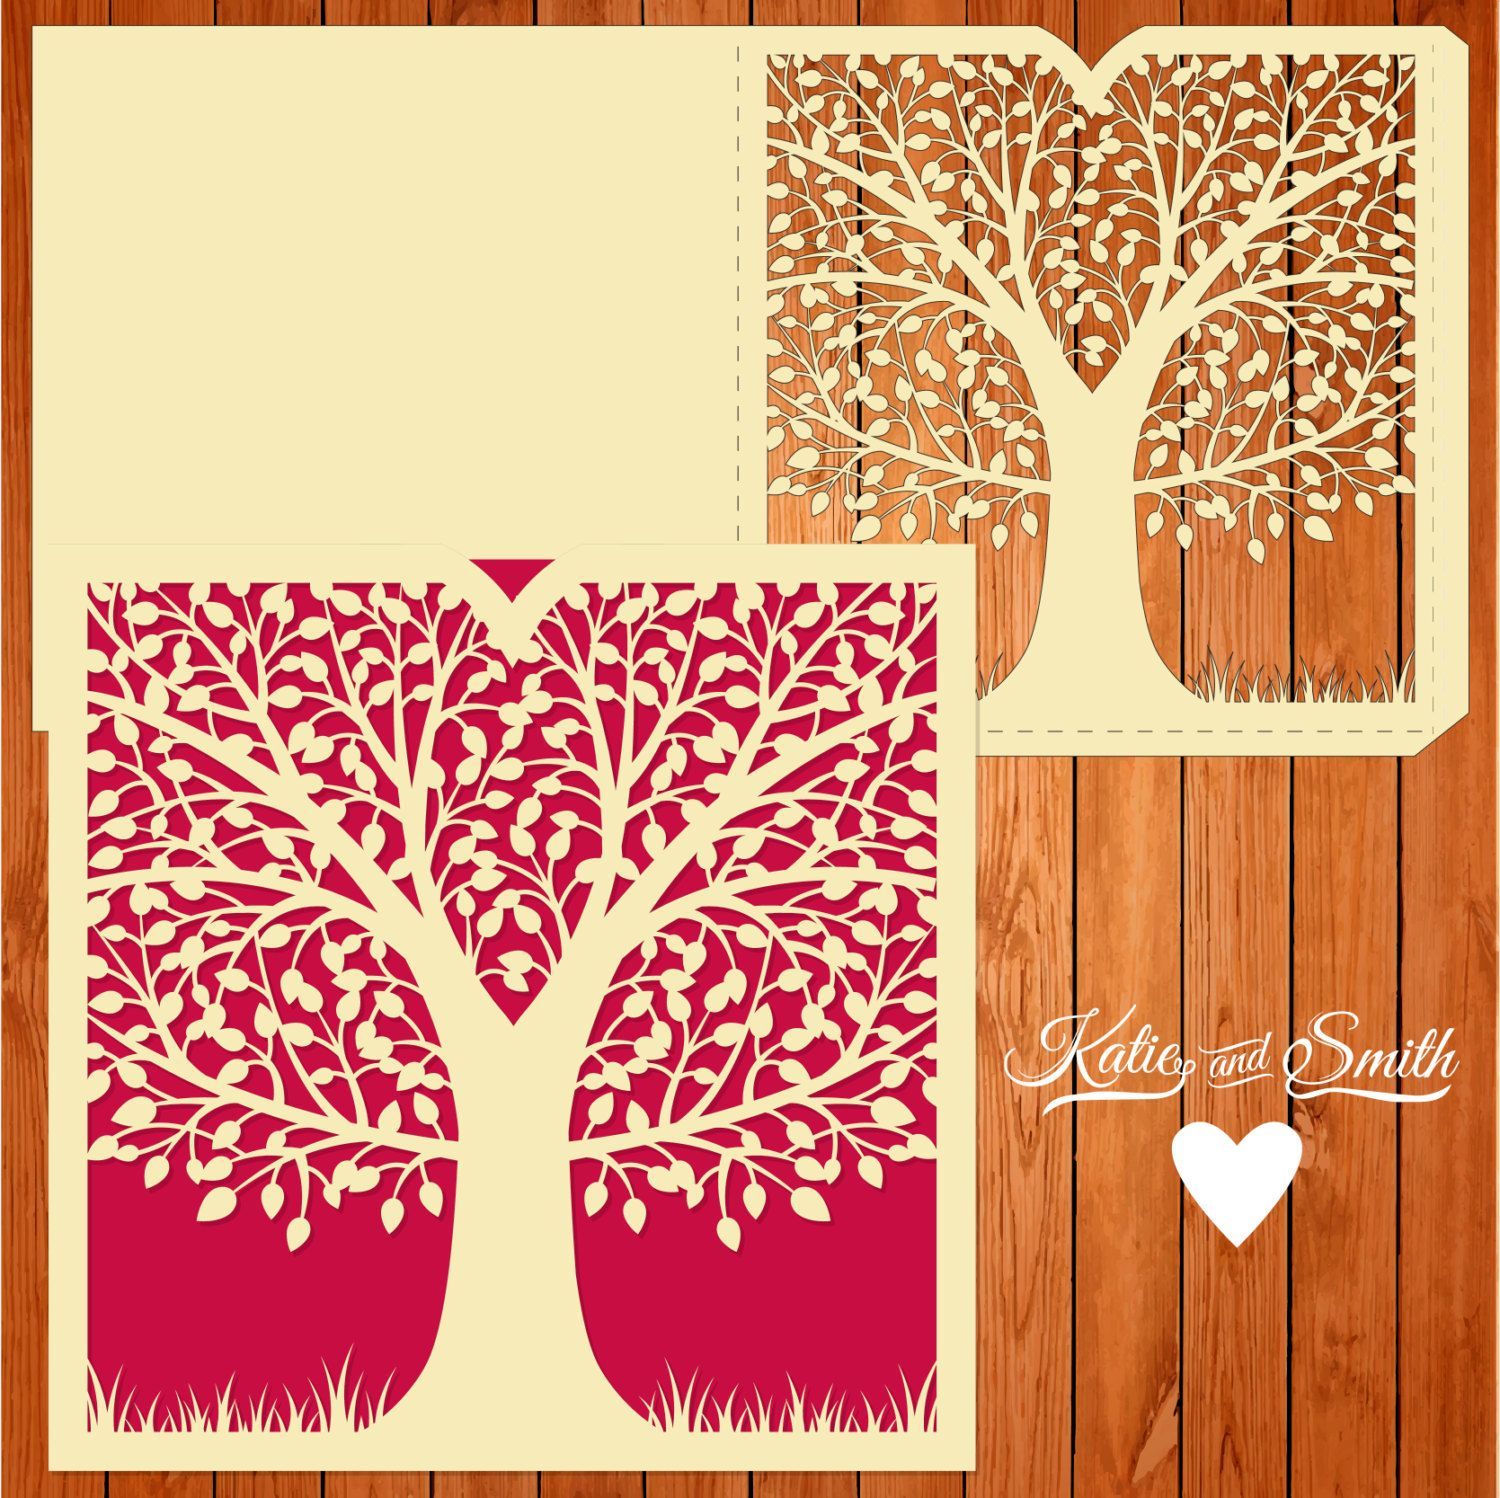 Wedding card invitation template, figures, tree, branches, leaves ...